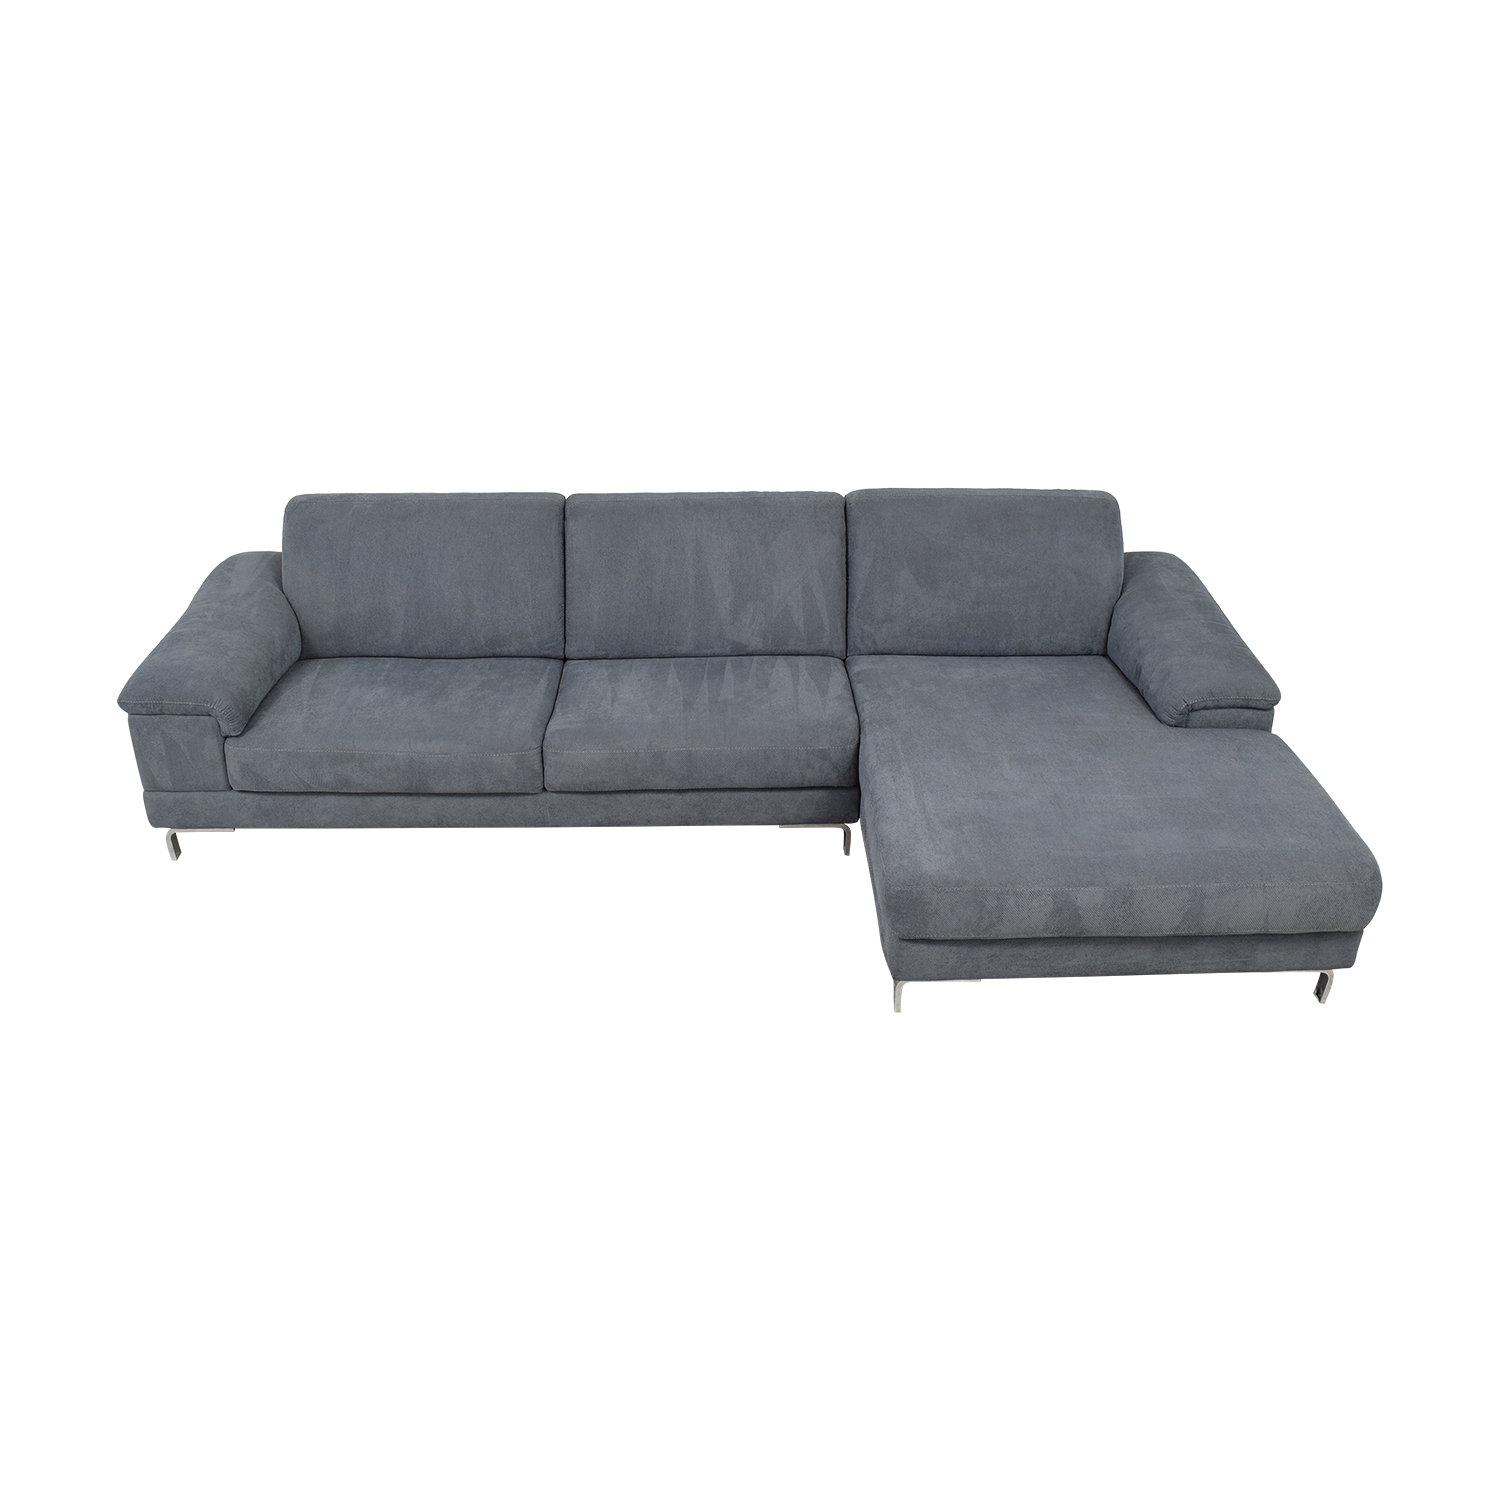 Bloomingdale's Bloomingdale's Grey Italian Fabric Chaise Sectional dimensions